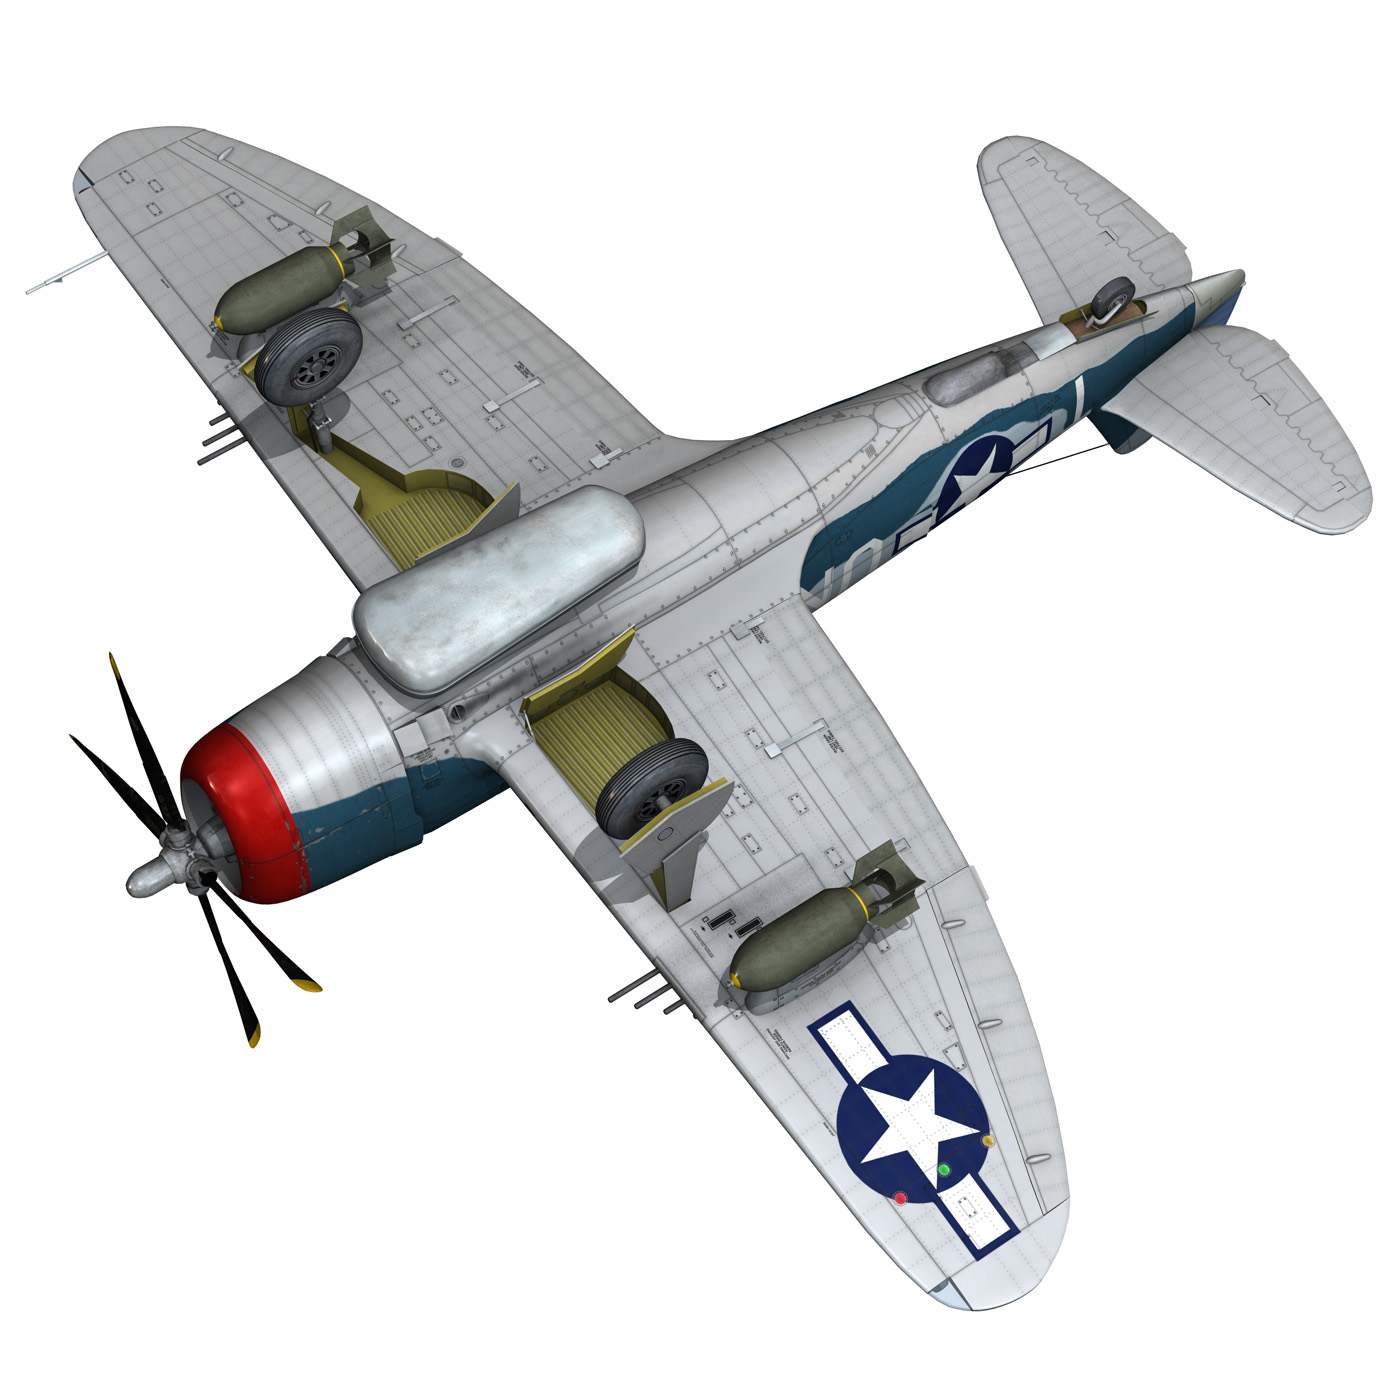 republic p-47 thunderbolt – ole miss lib 3d model fbx c4d lwo obj 274289